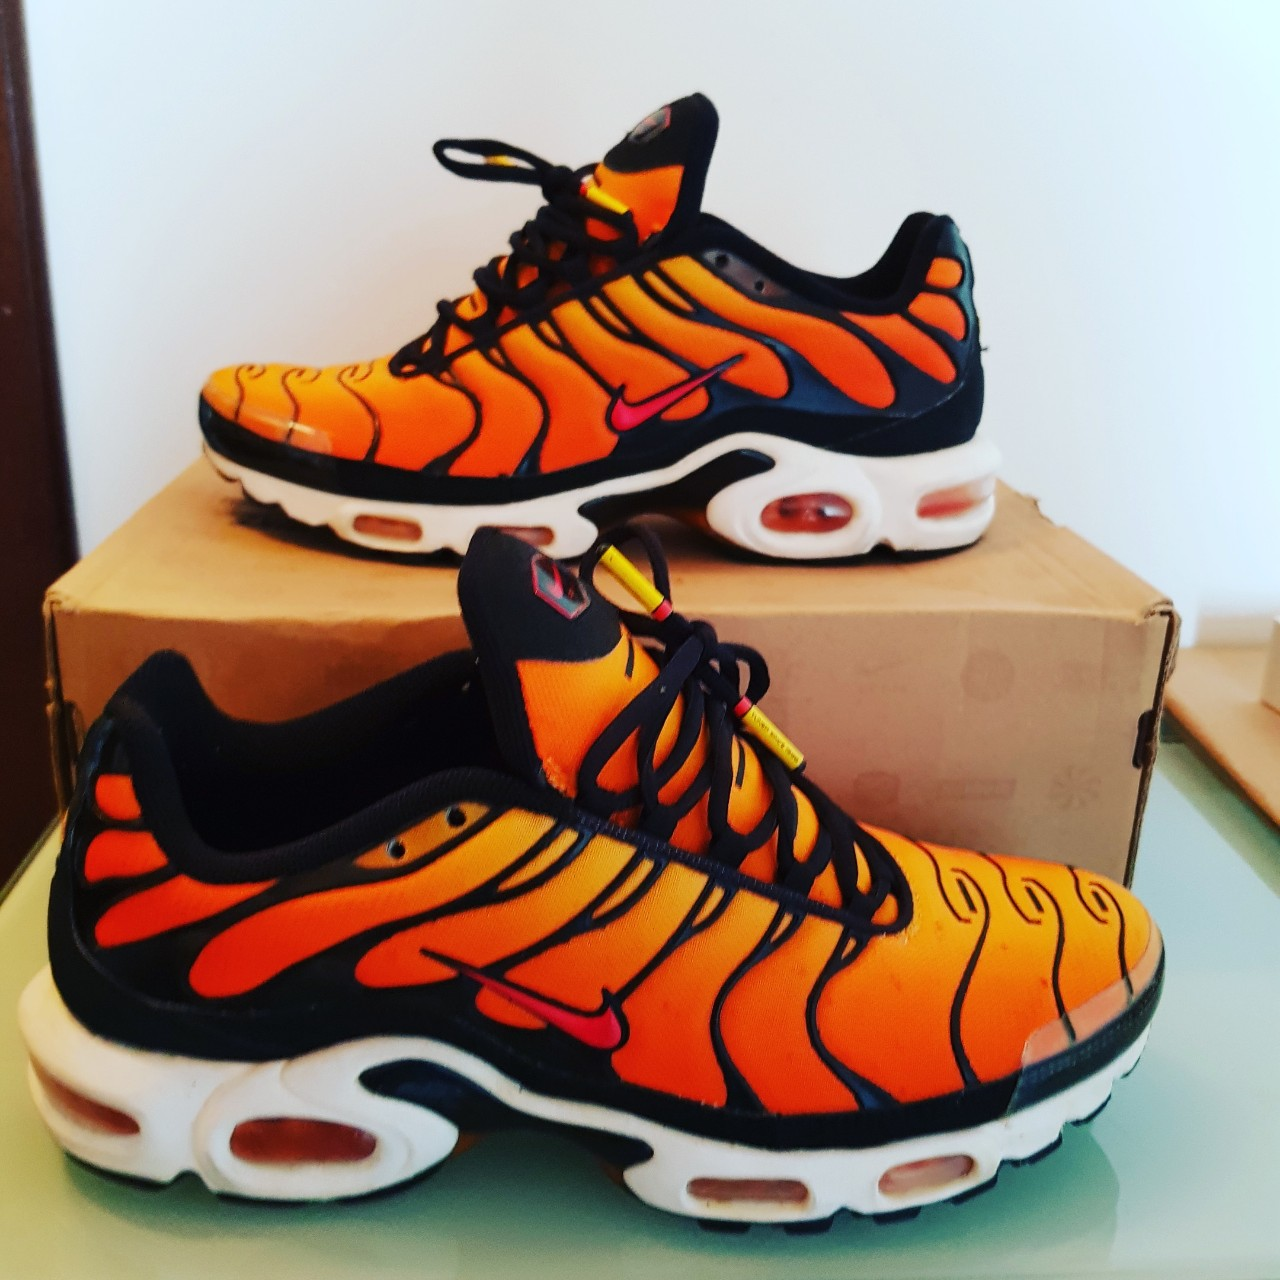 promo code 37dca dc140 Nike air max plus tn Tiger 2013 10us 9uk 44eu 8.5/10... - Depop